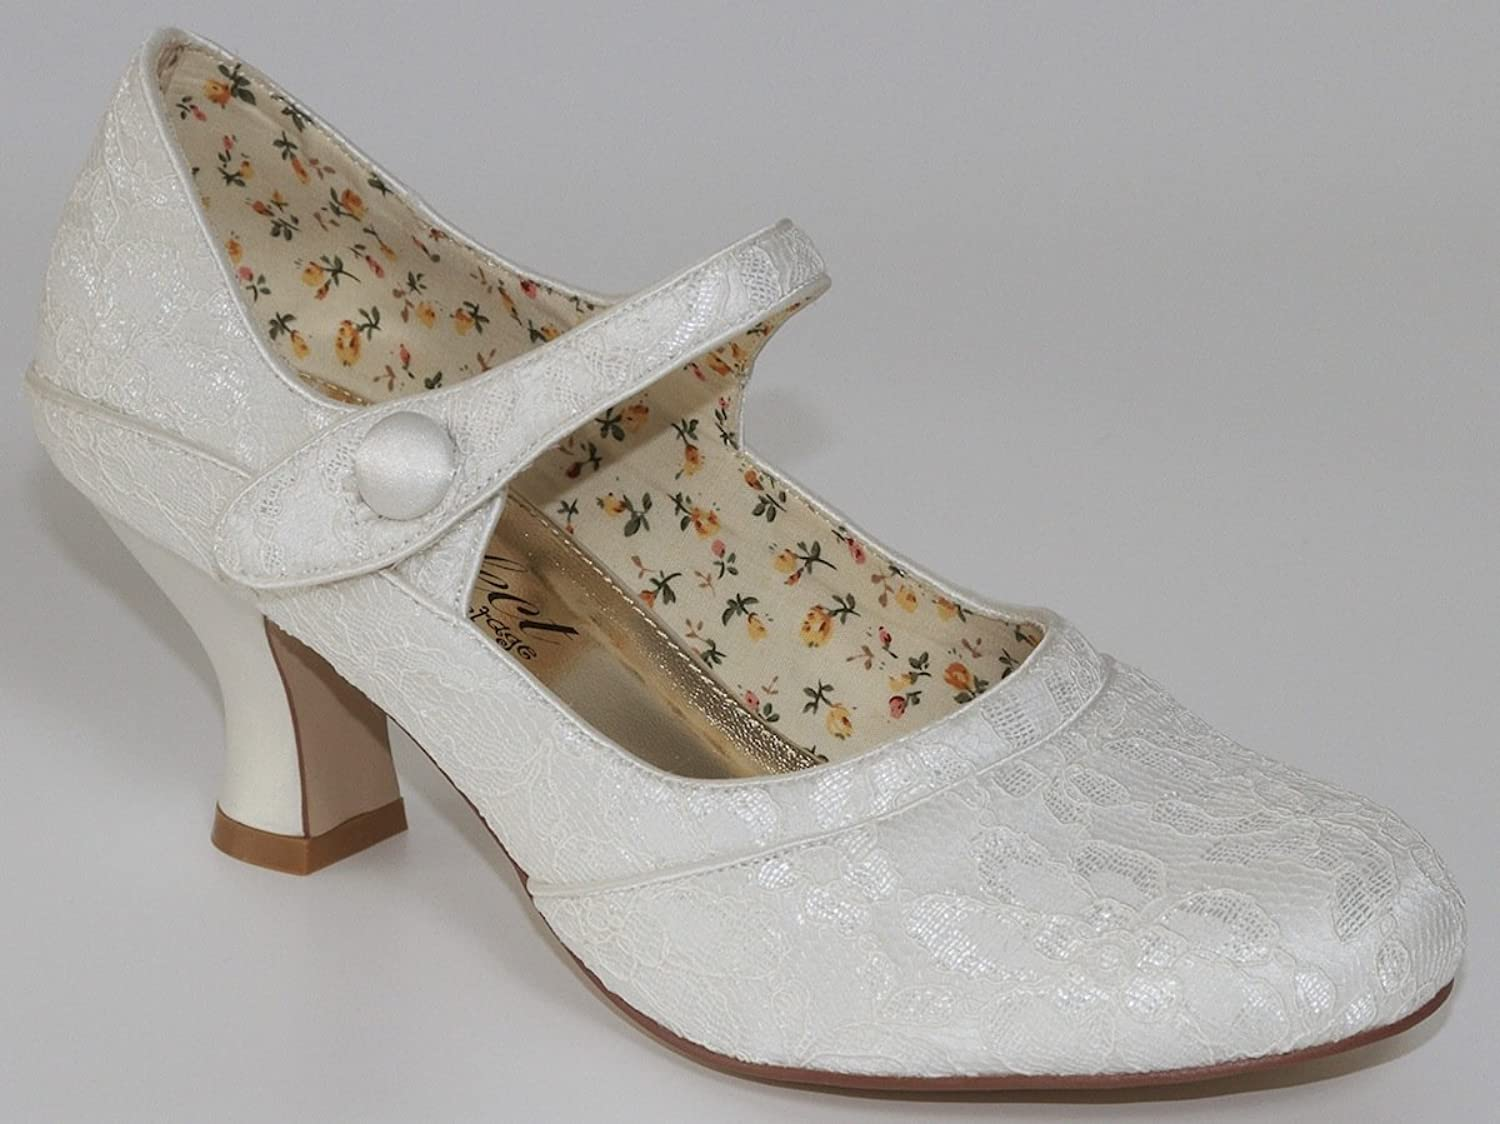 Ivory Lace Bridal Shoe Esta Mid Heel 7UK 41 EU Amazonco Uk Shoes Bags